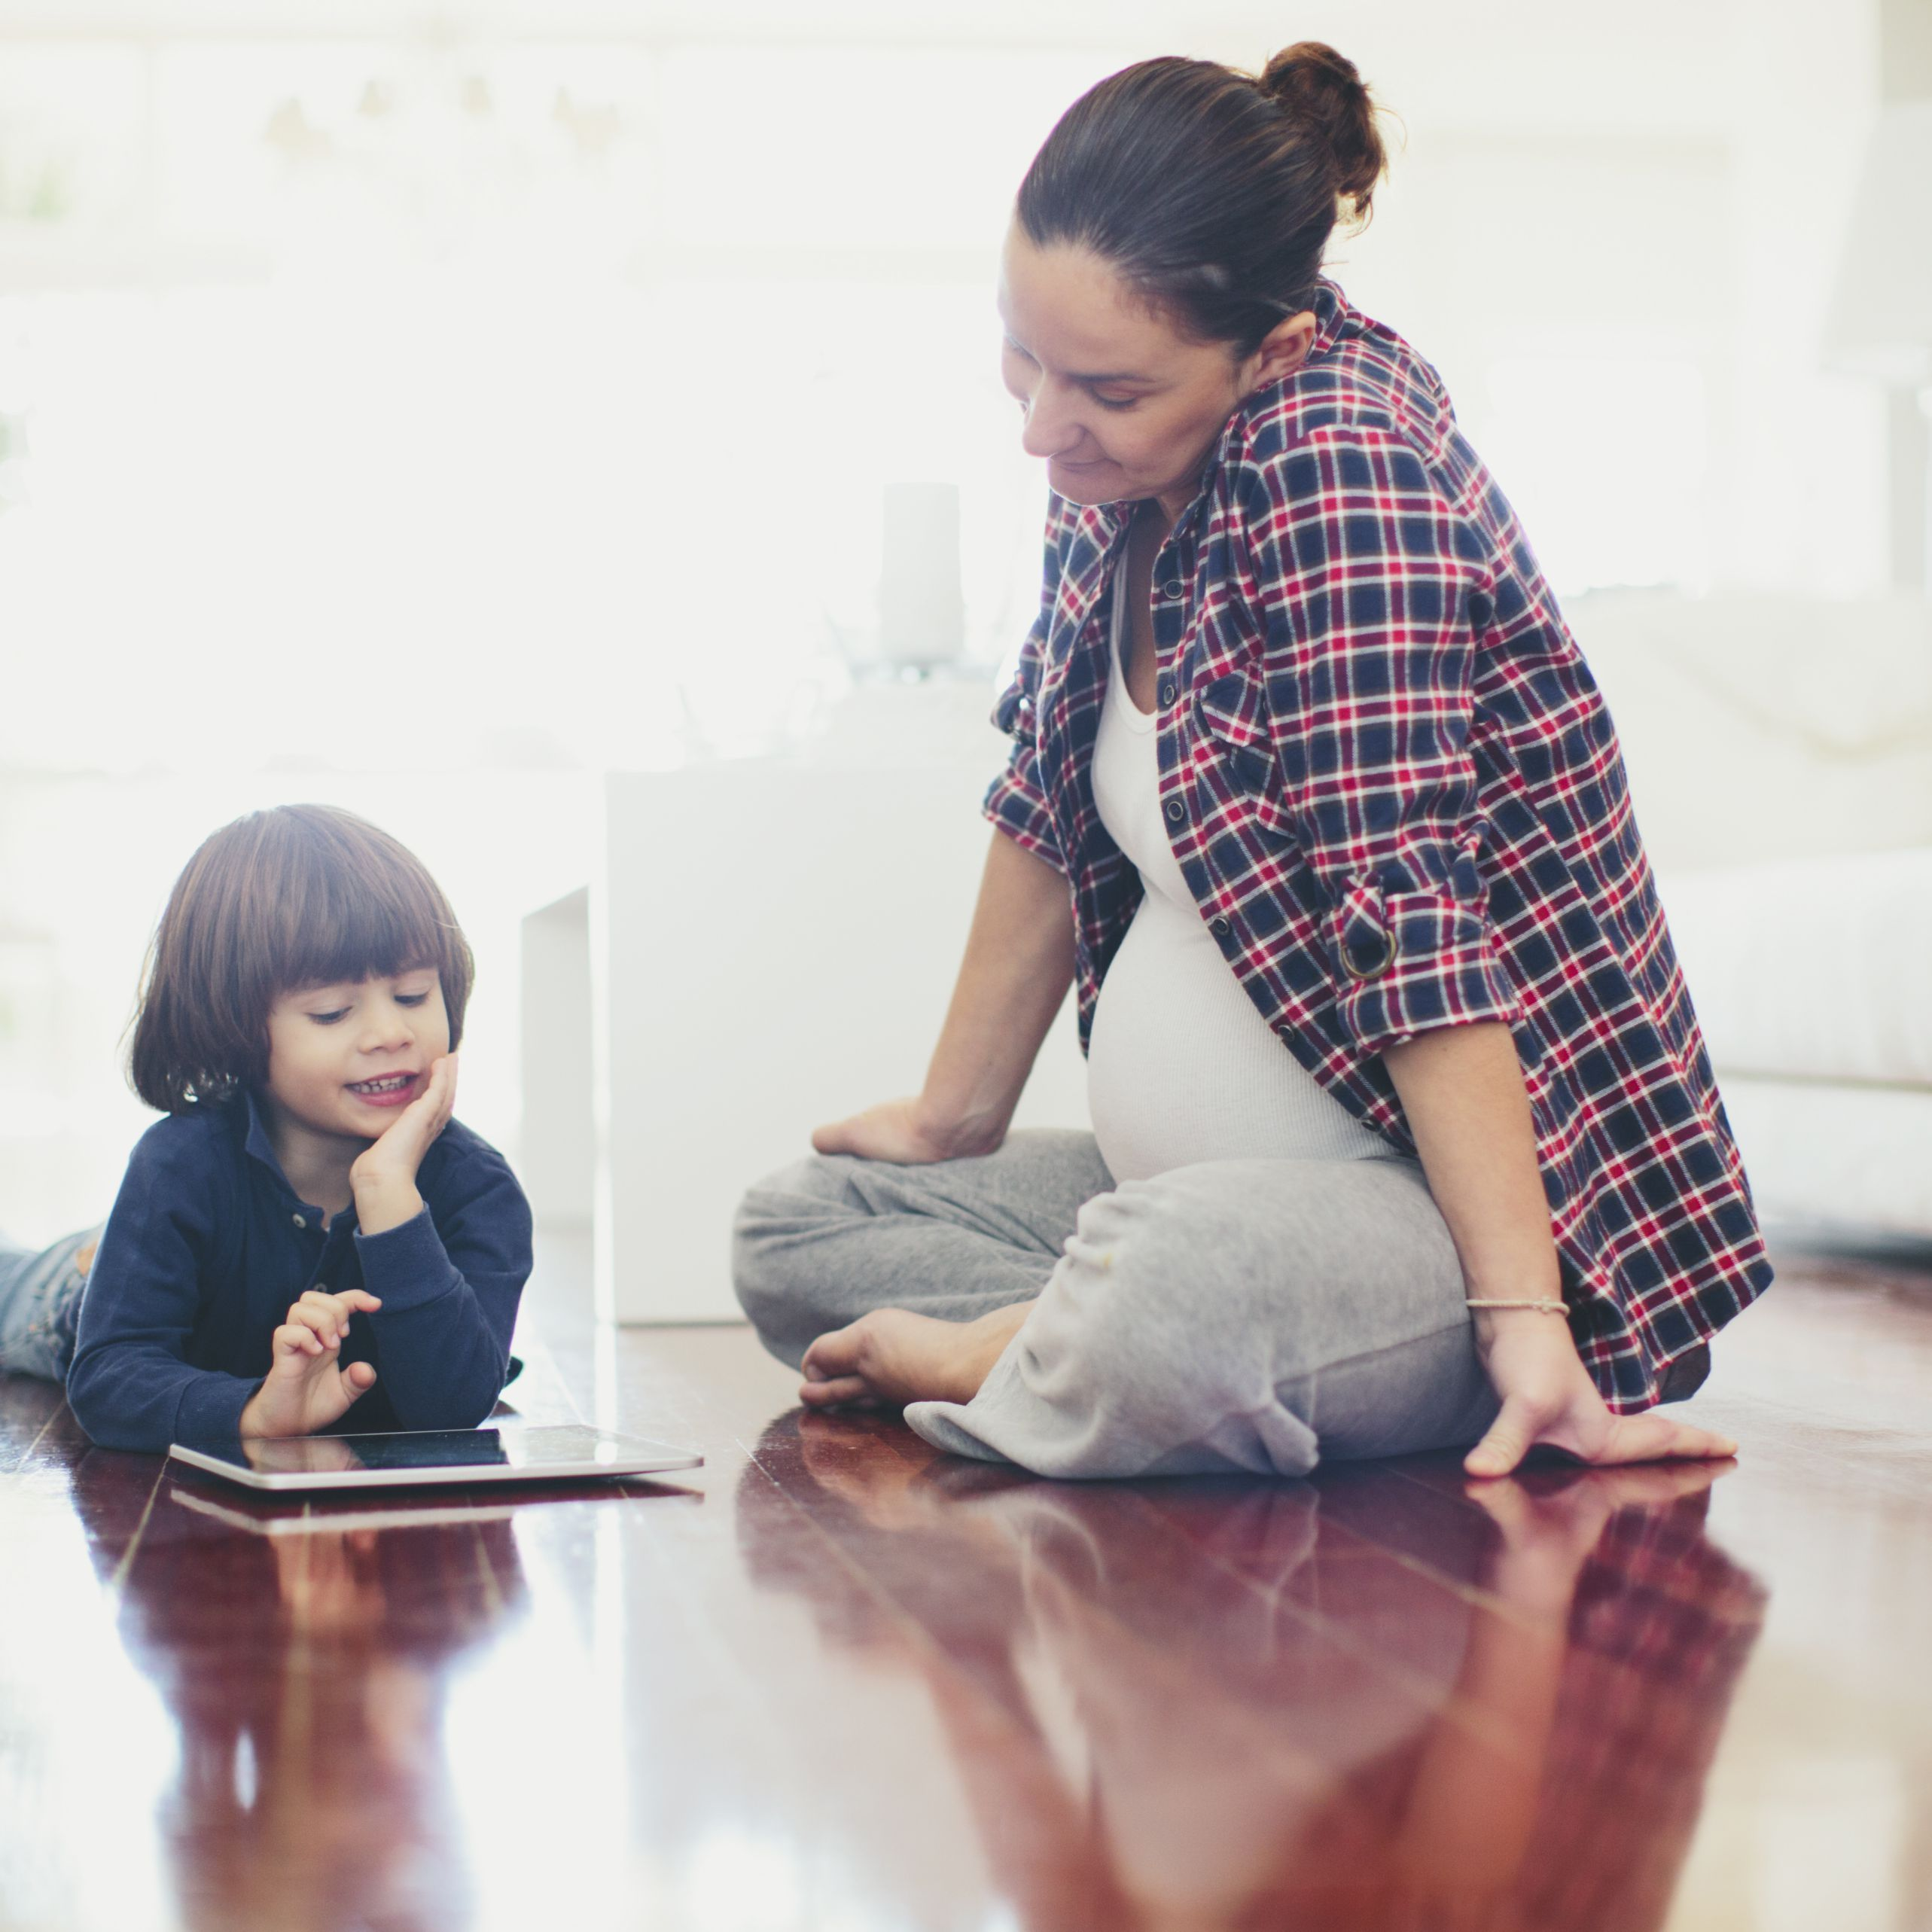 How Observational Learning Affects Behavior